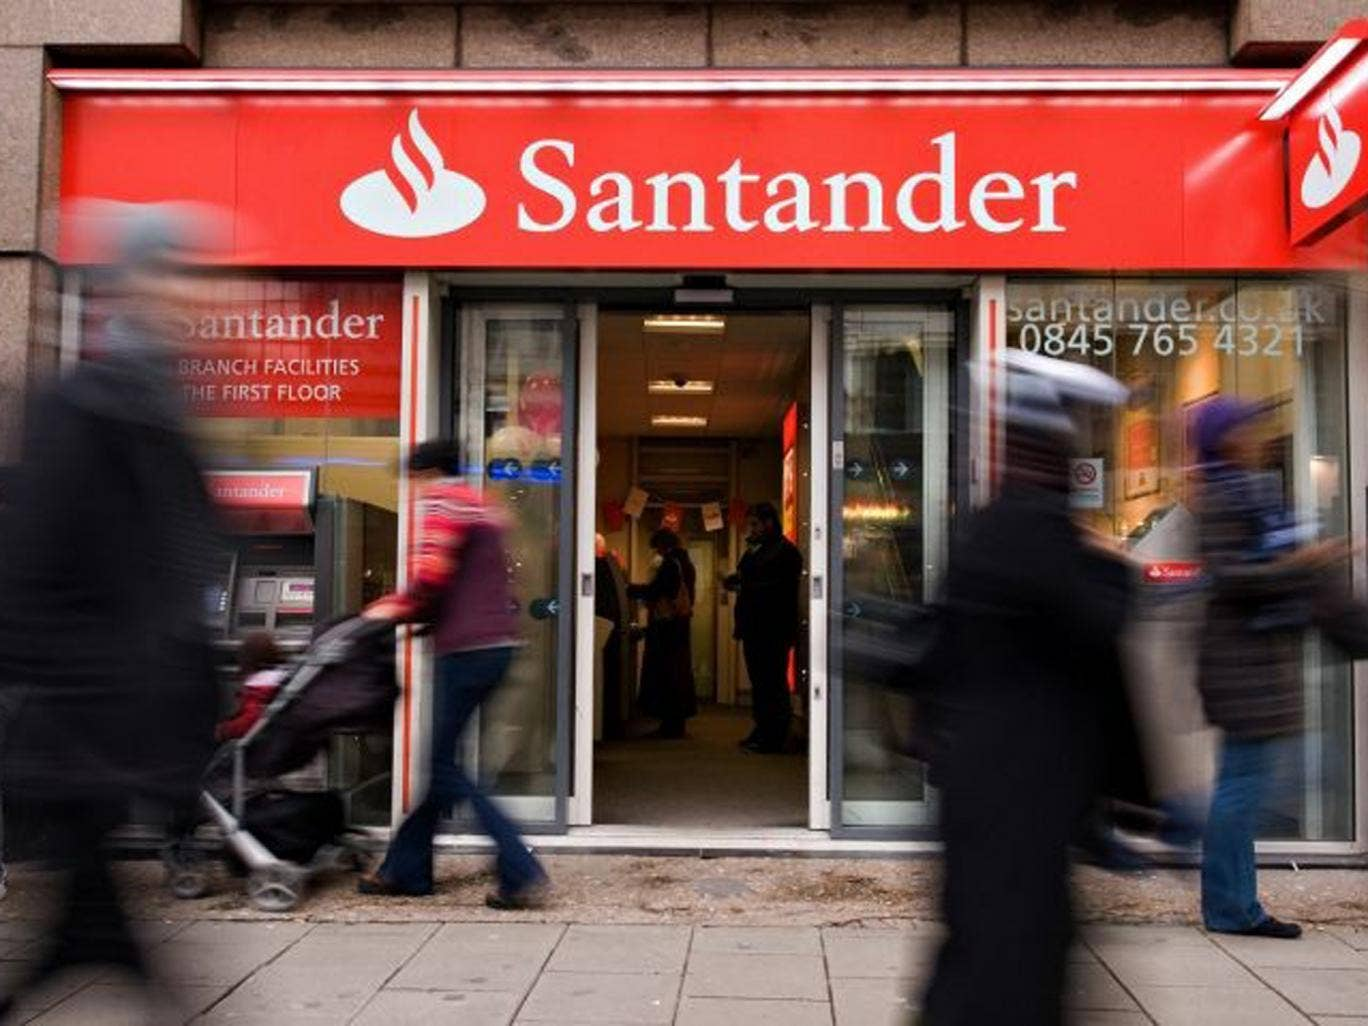 Santander may not be the only bank to take flight from these accounts